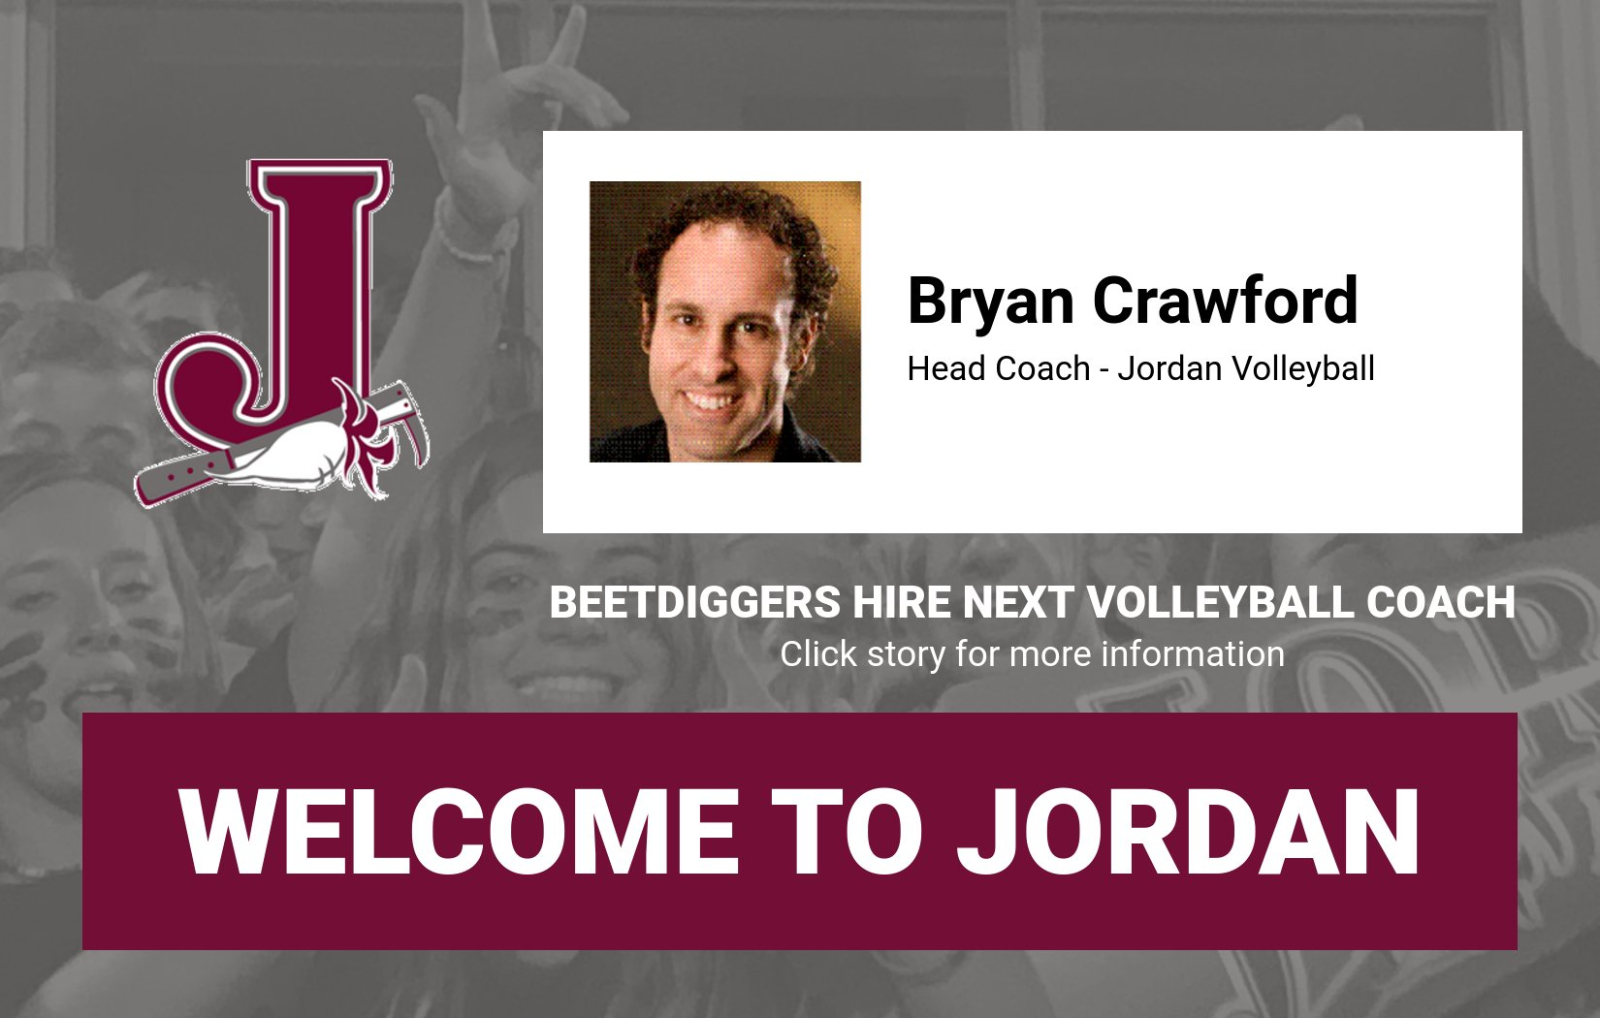 JORDAN VOLLEYBALL HIRES BRYAN CRAWFORD AS NEXT HEAD COACH